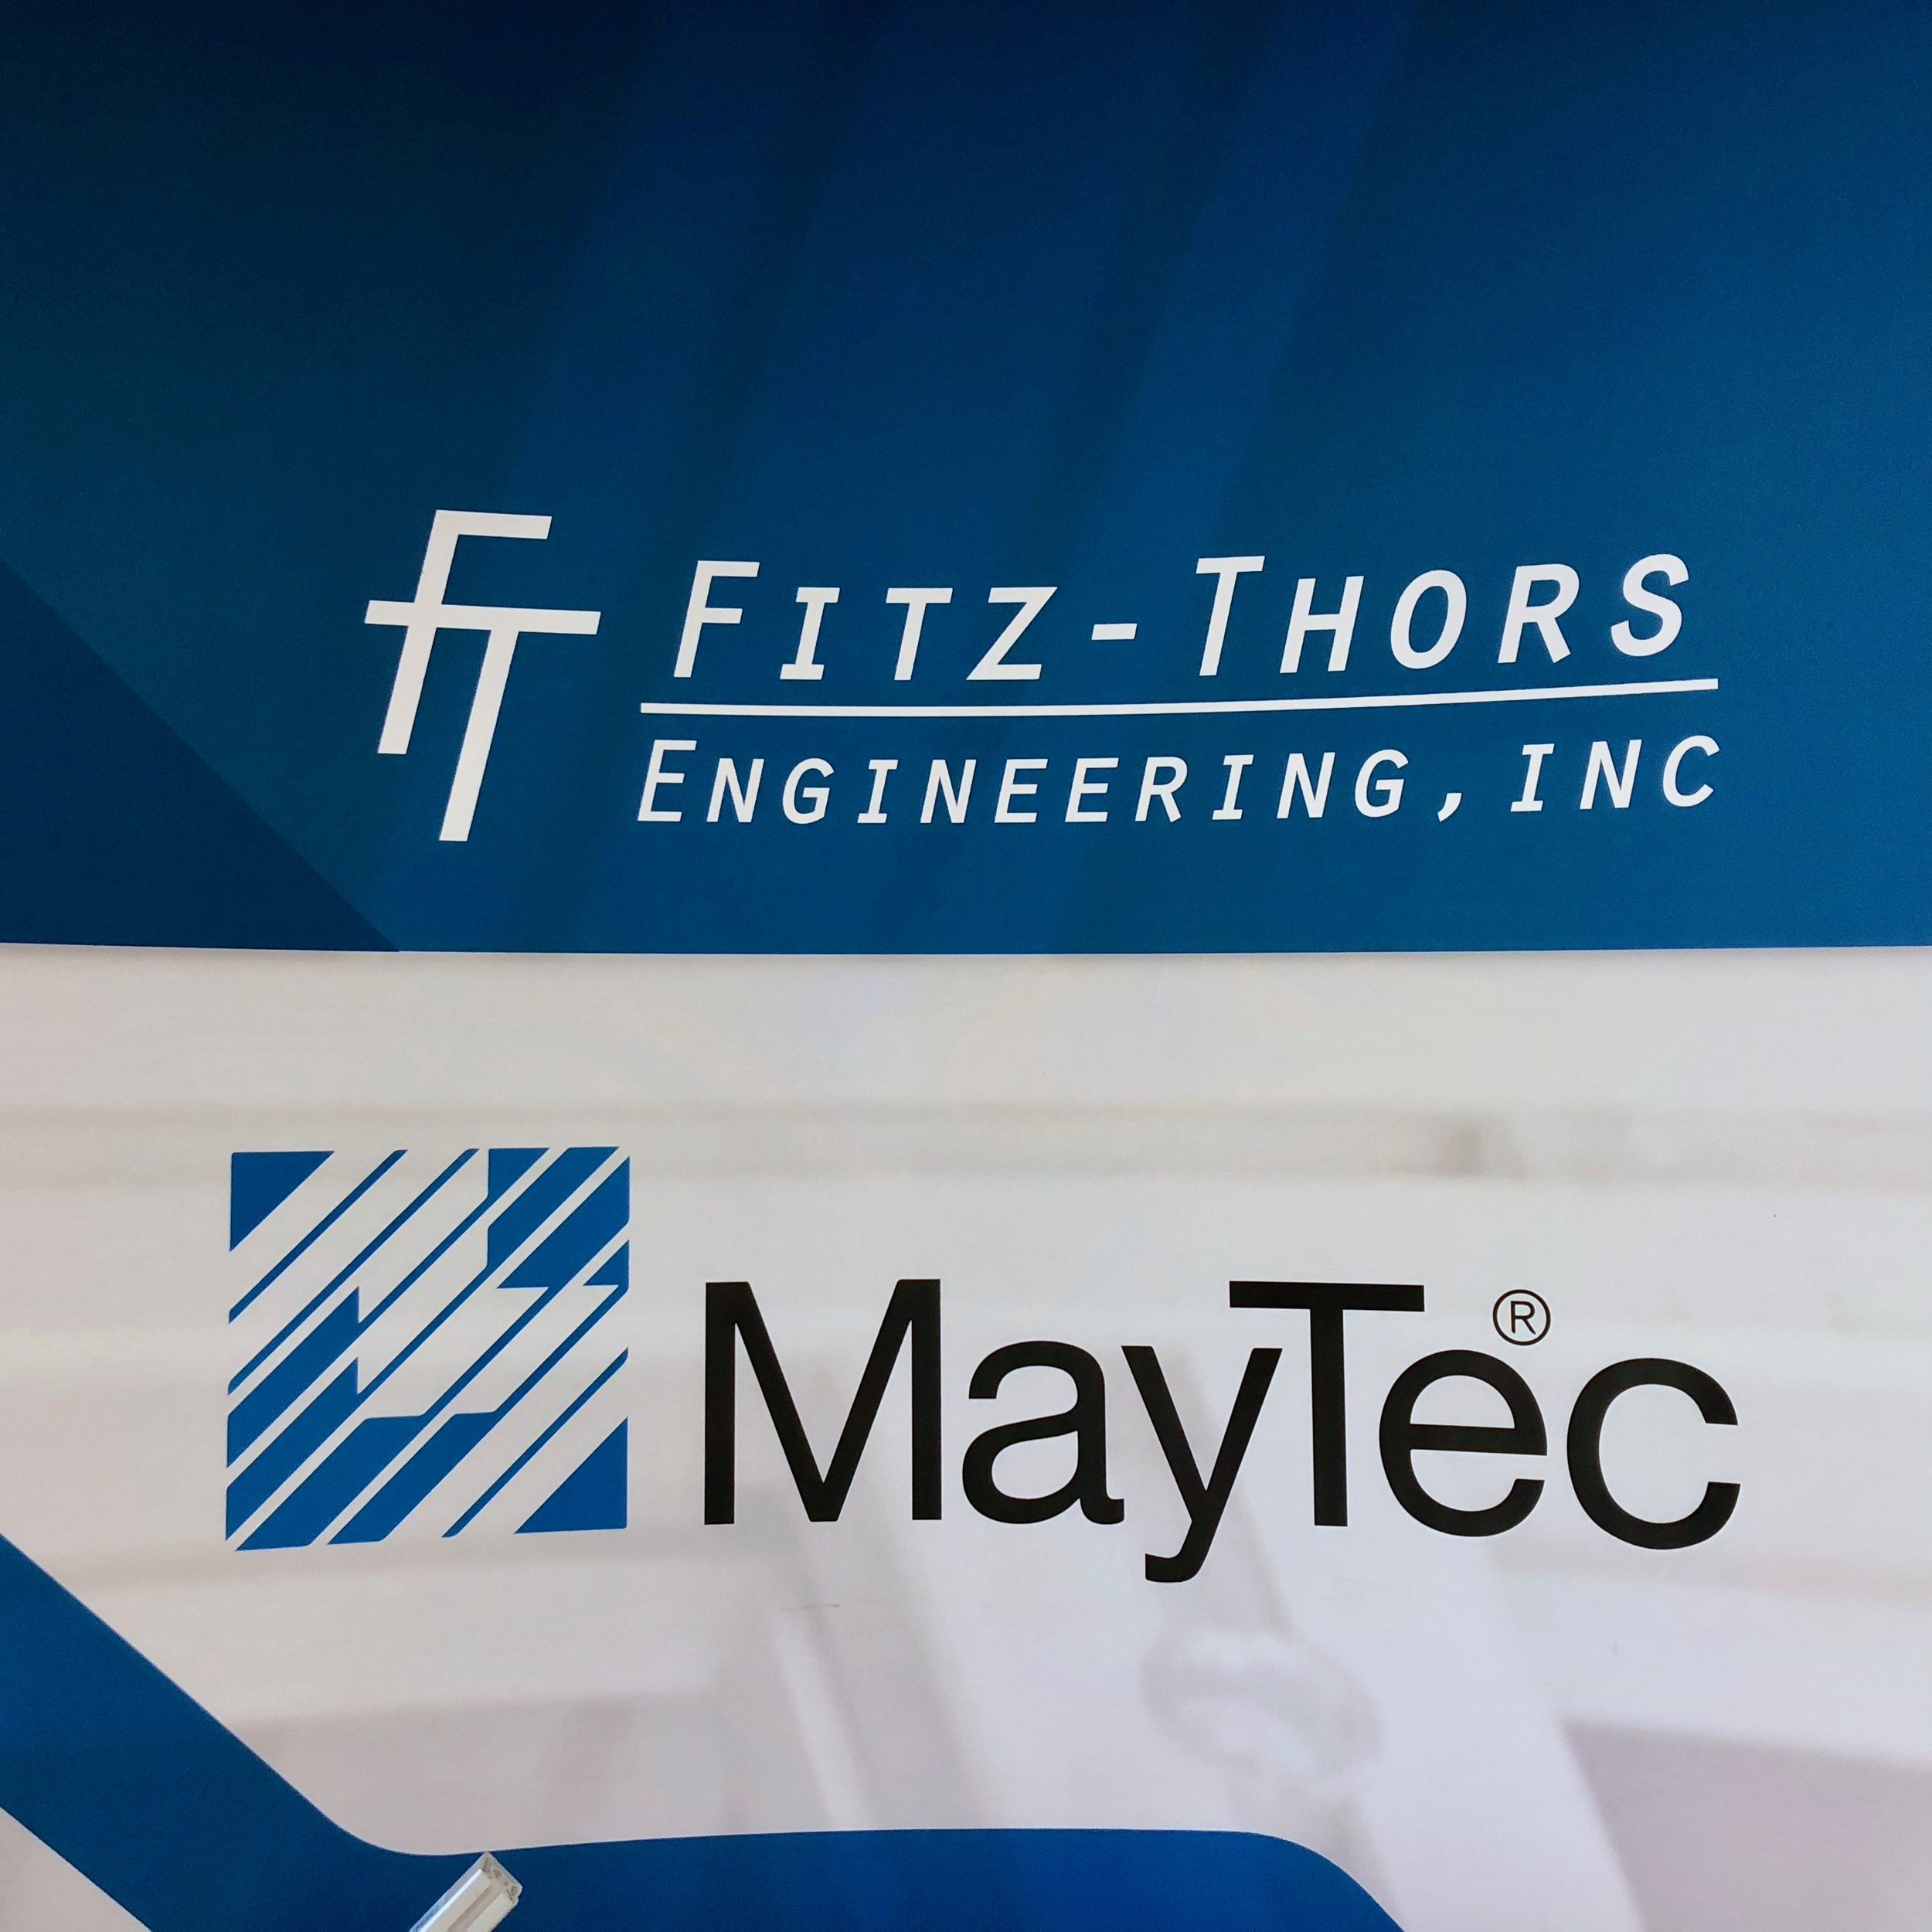 MayTec-sign_Fitz-Thors-Engineering_MayTec-Distributor_Birmingham-AL.jpg